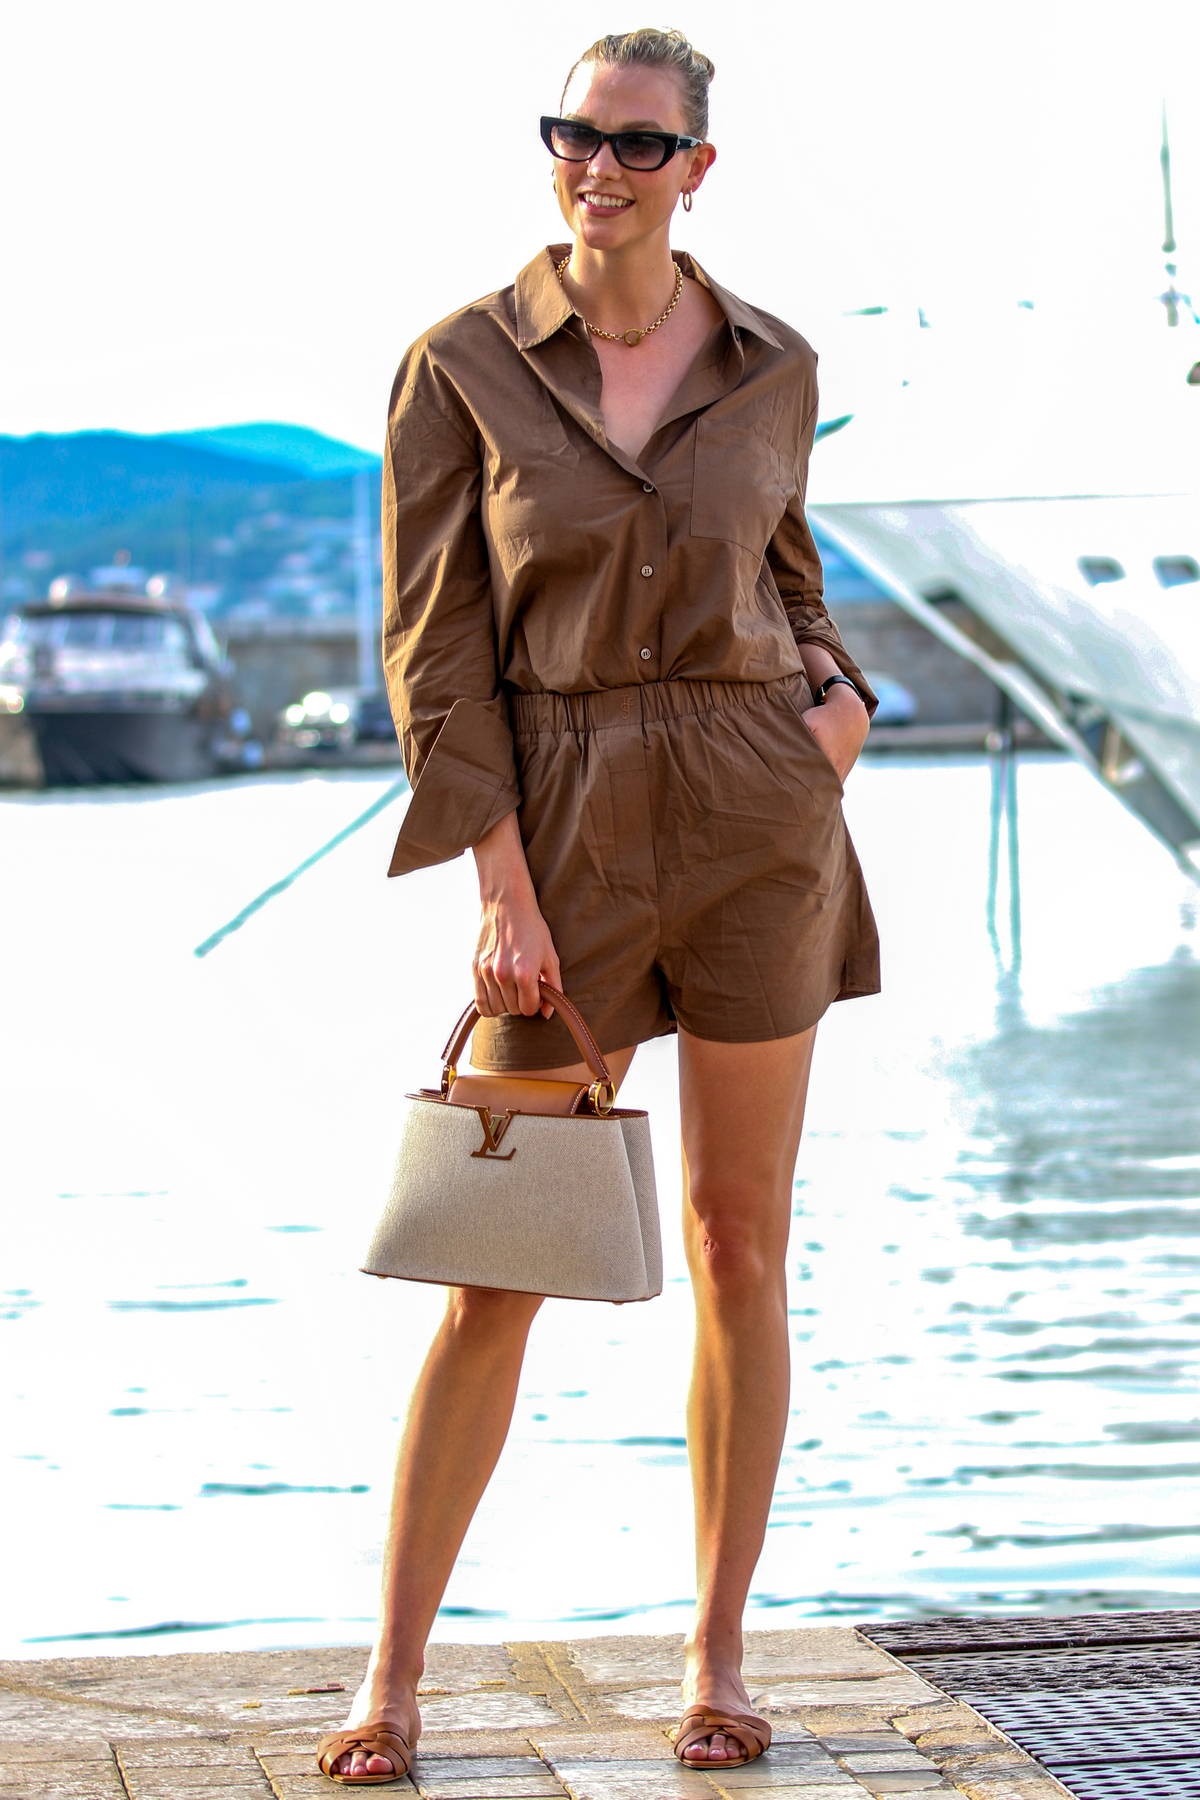 Karlie Kloss keeps it casual chic as she steps out in dark brown outfit in Saint-Tropez, France